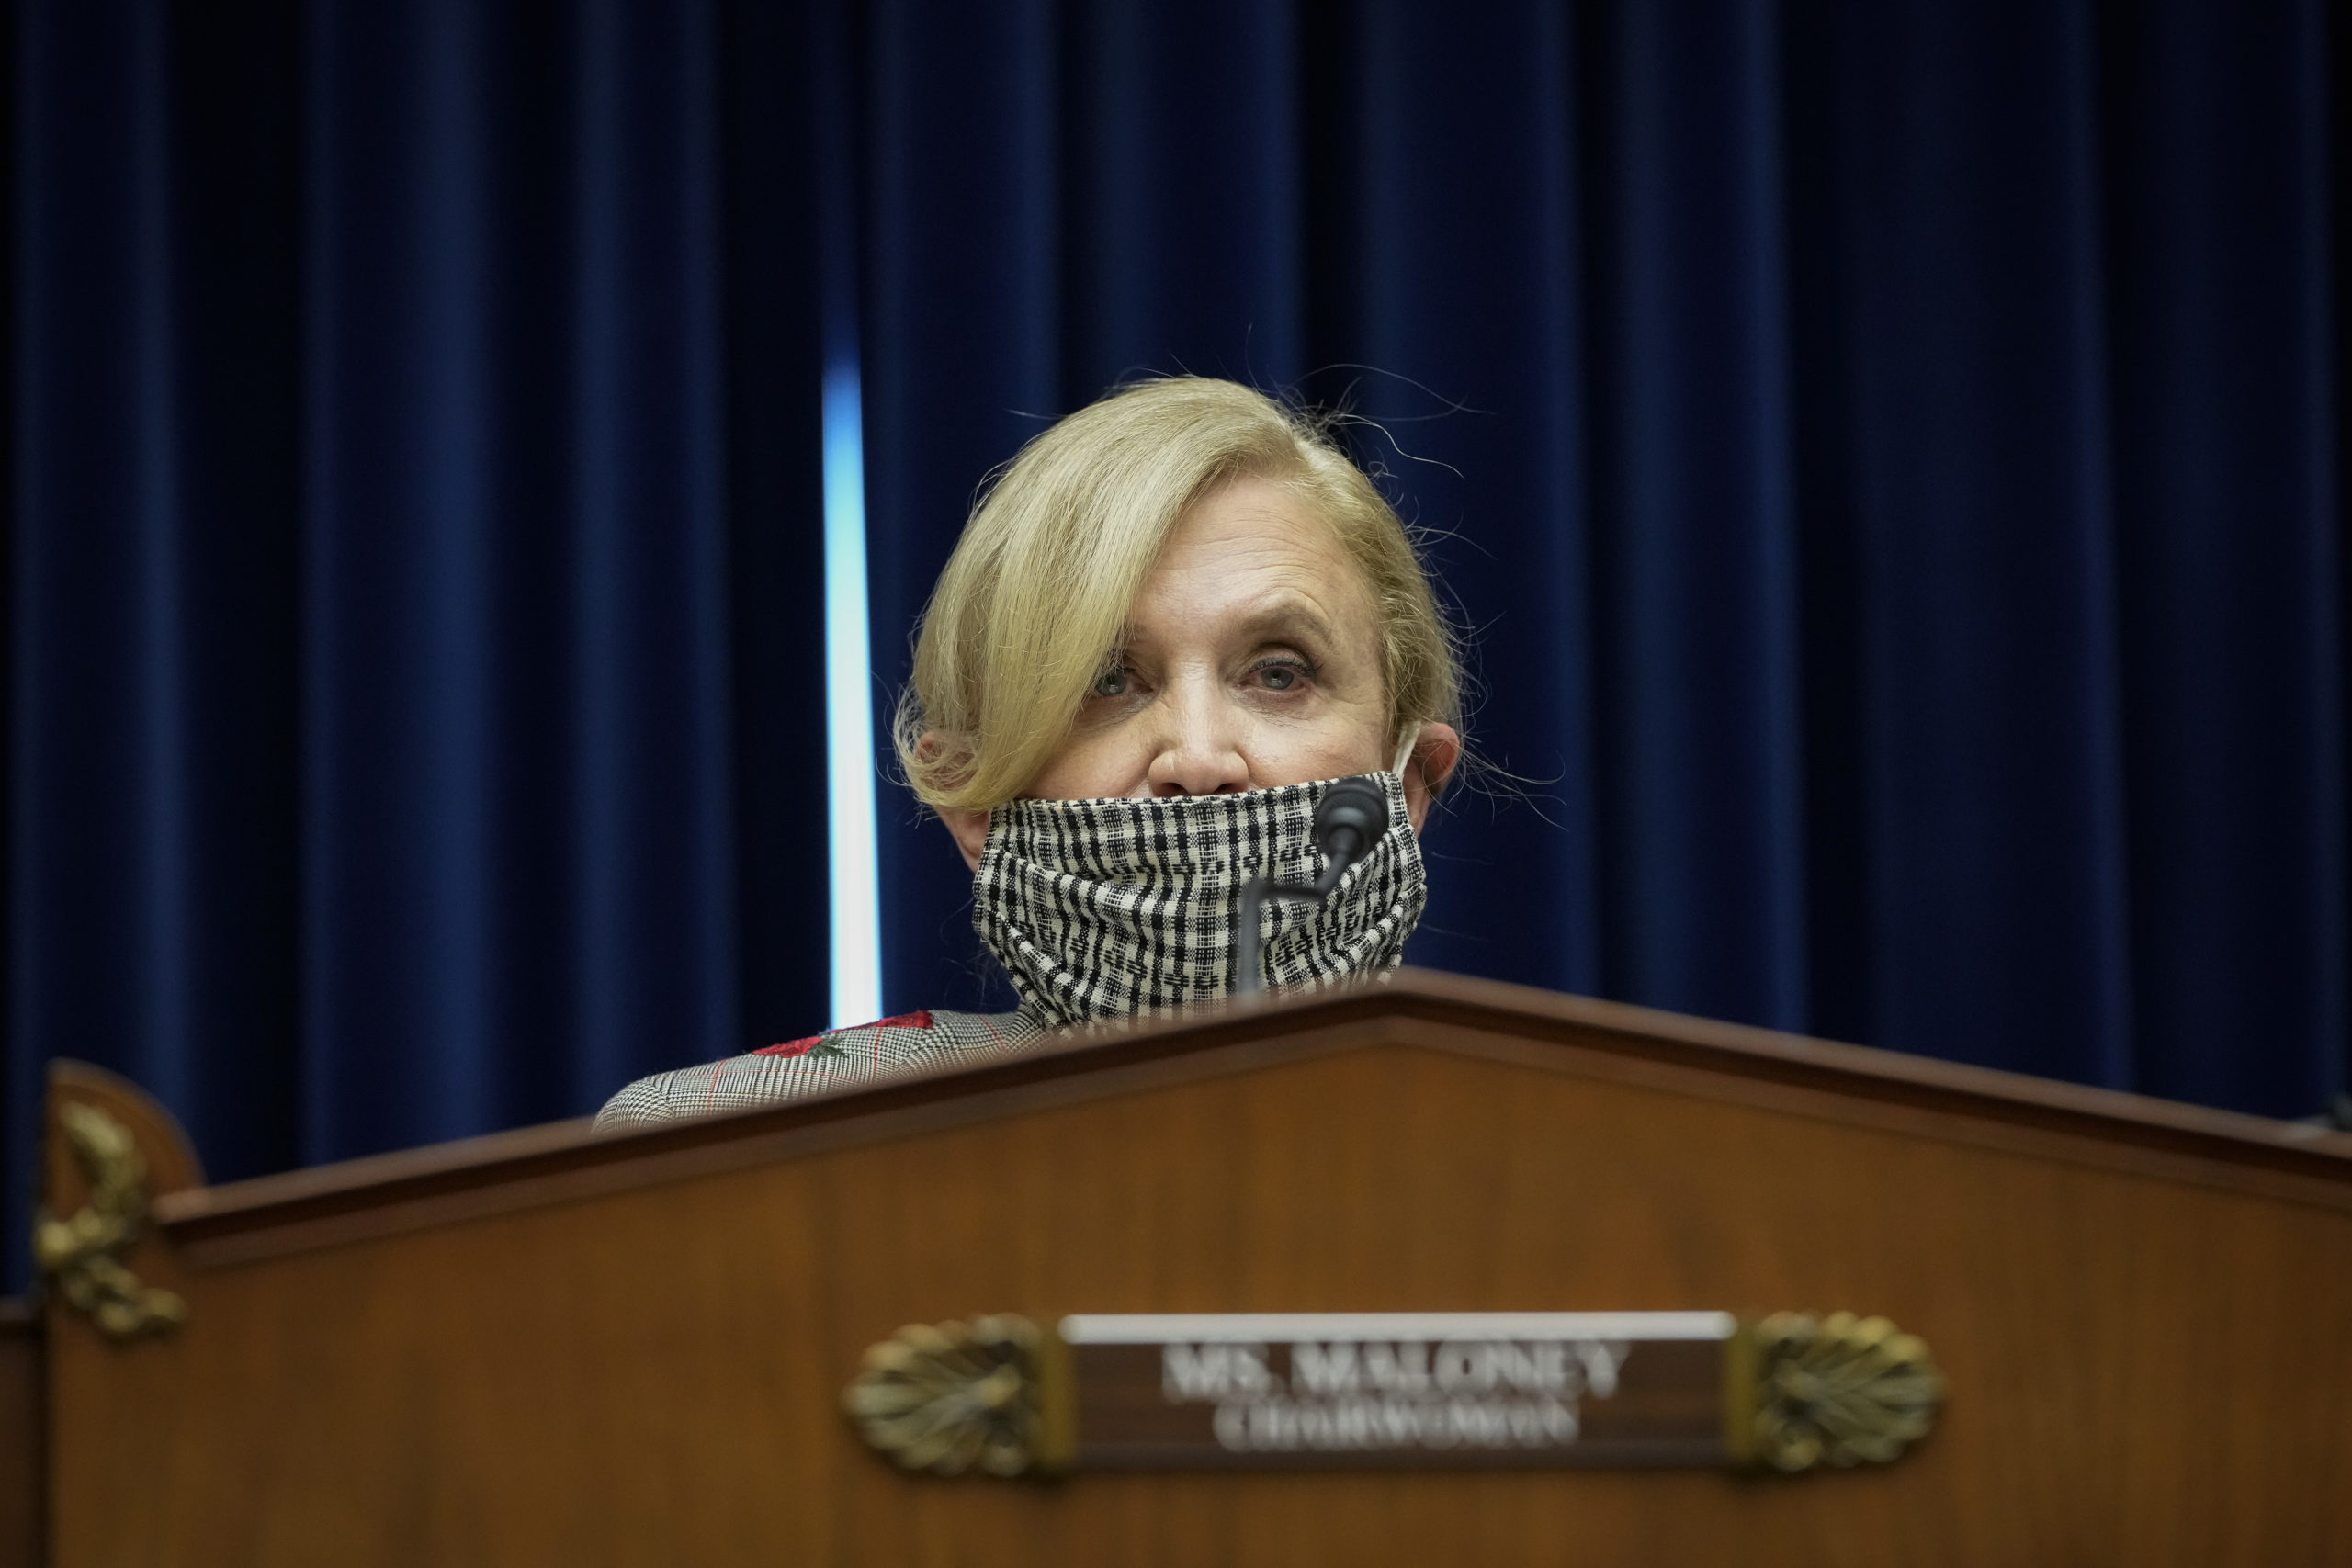 """WASHINGTON, DC - MARCH 24: Committee chairwoman Rep. Carolyn Maloney (D-NY) speaks during a House Oversight Committee hearing titled """"Honoring Equal Pay Day: Examining the Long-Term Economic Impacts of Gender Inequality"""" on Capitol Hill on March 24, 2021 in Washington, DC. (Photo by Drew Angerer/Getty Images)"""